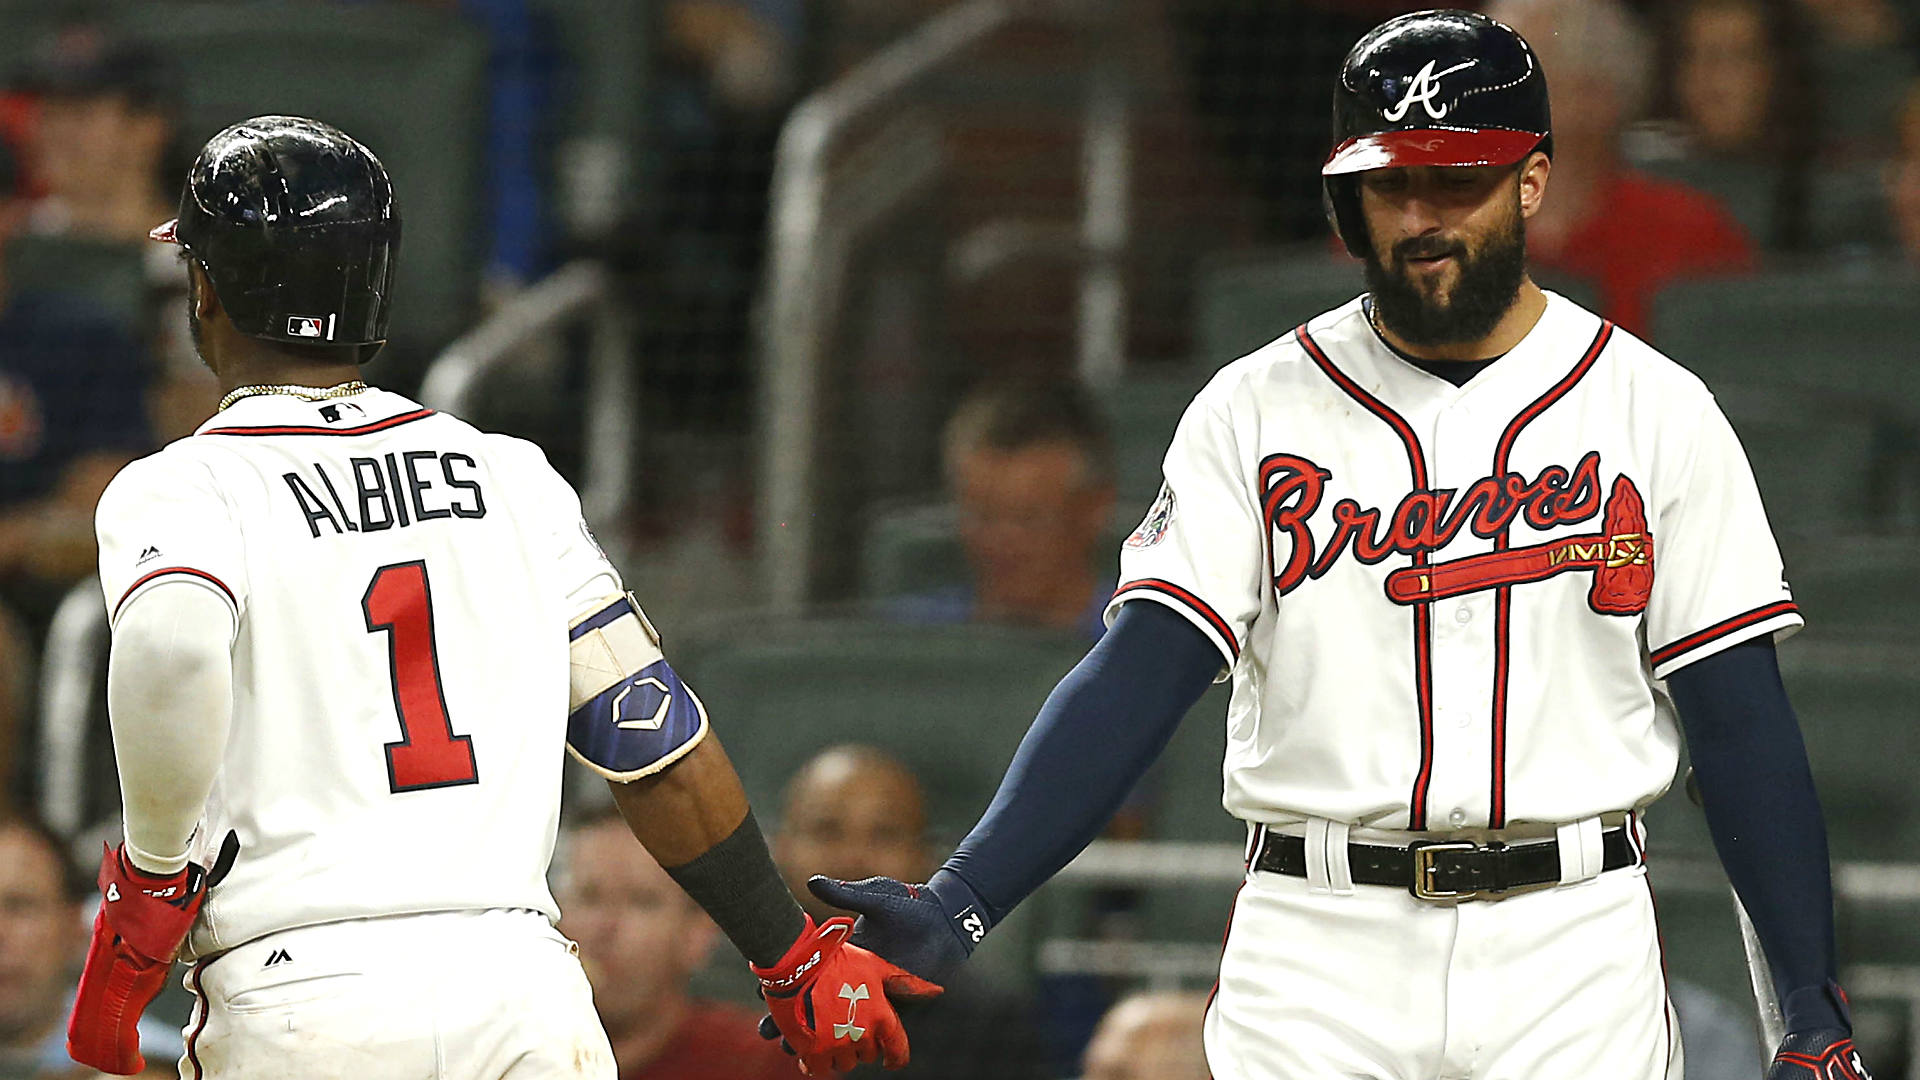 Scandal-stained Braves must send strong message to fans this offseason